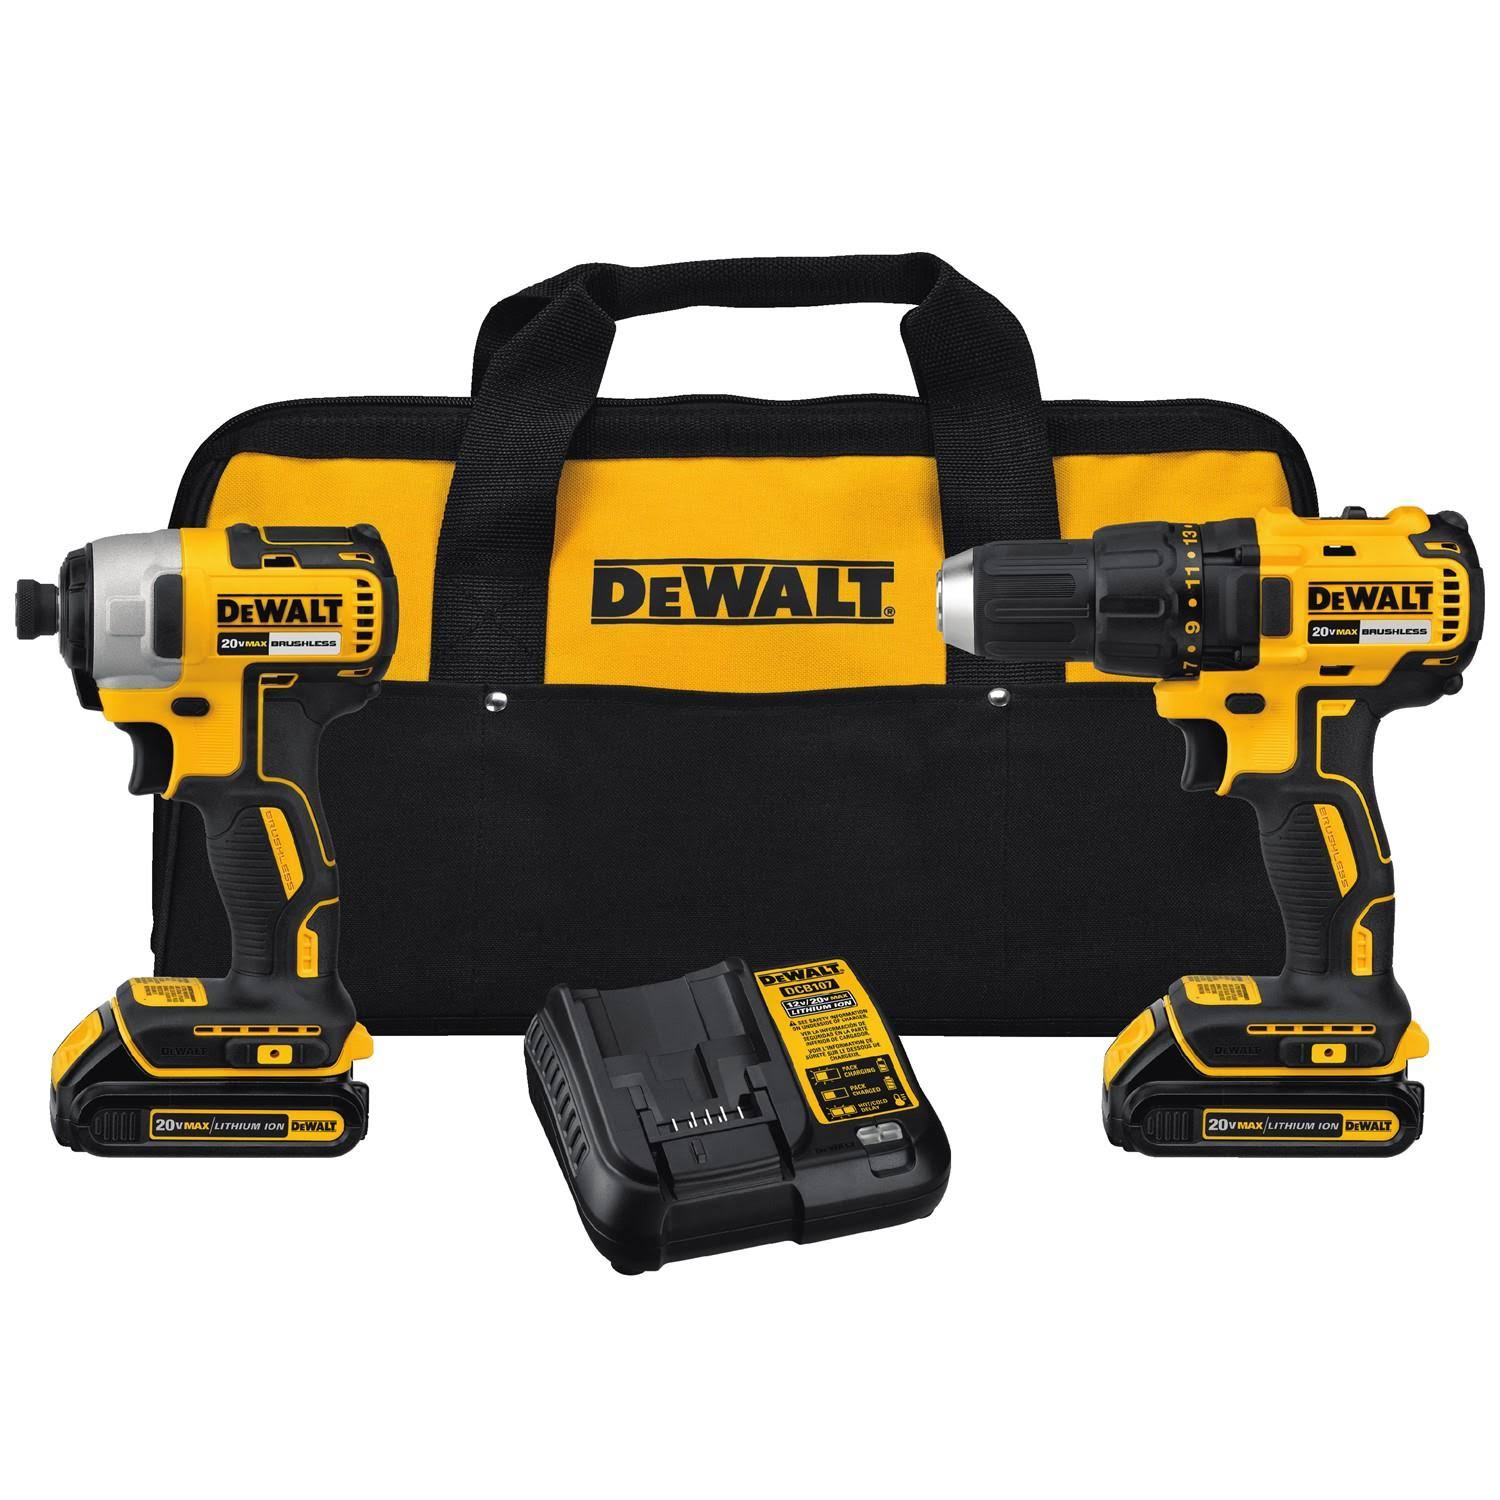 Dewalt Lithium-Ion Cordless Drill and Impact Combo Kit - 20V